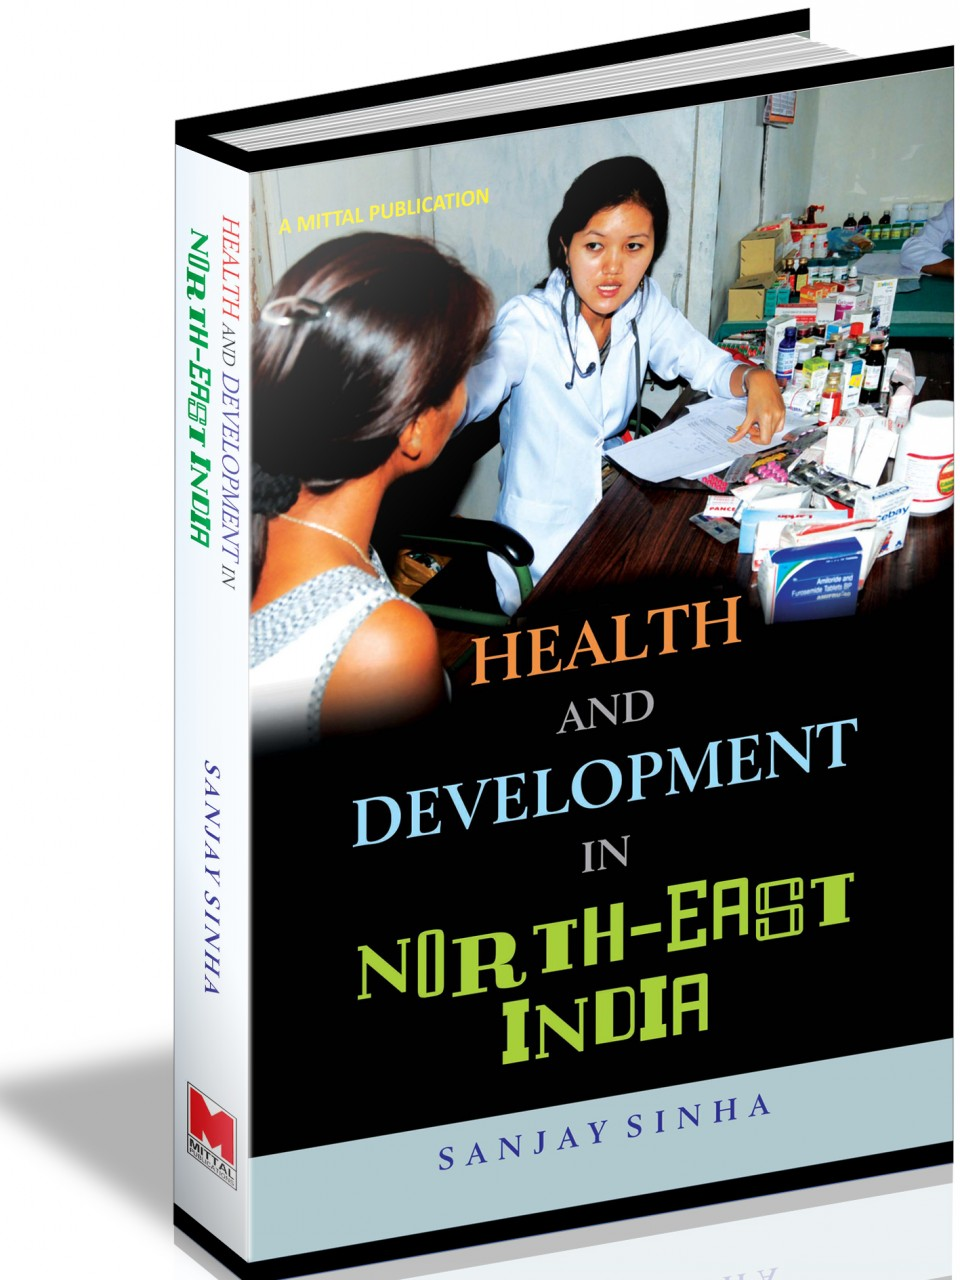 health-and-development-in-north-east-india